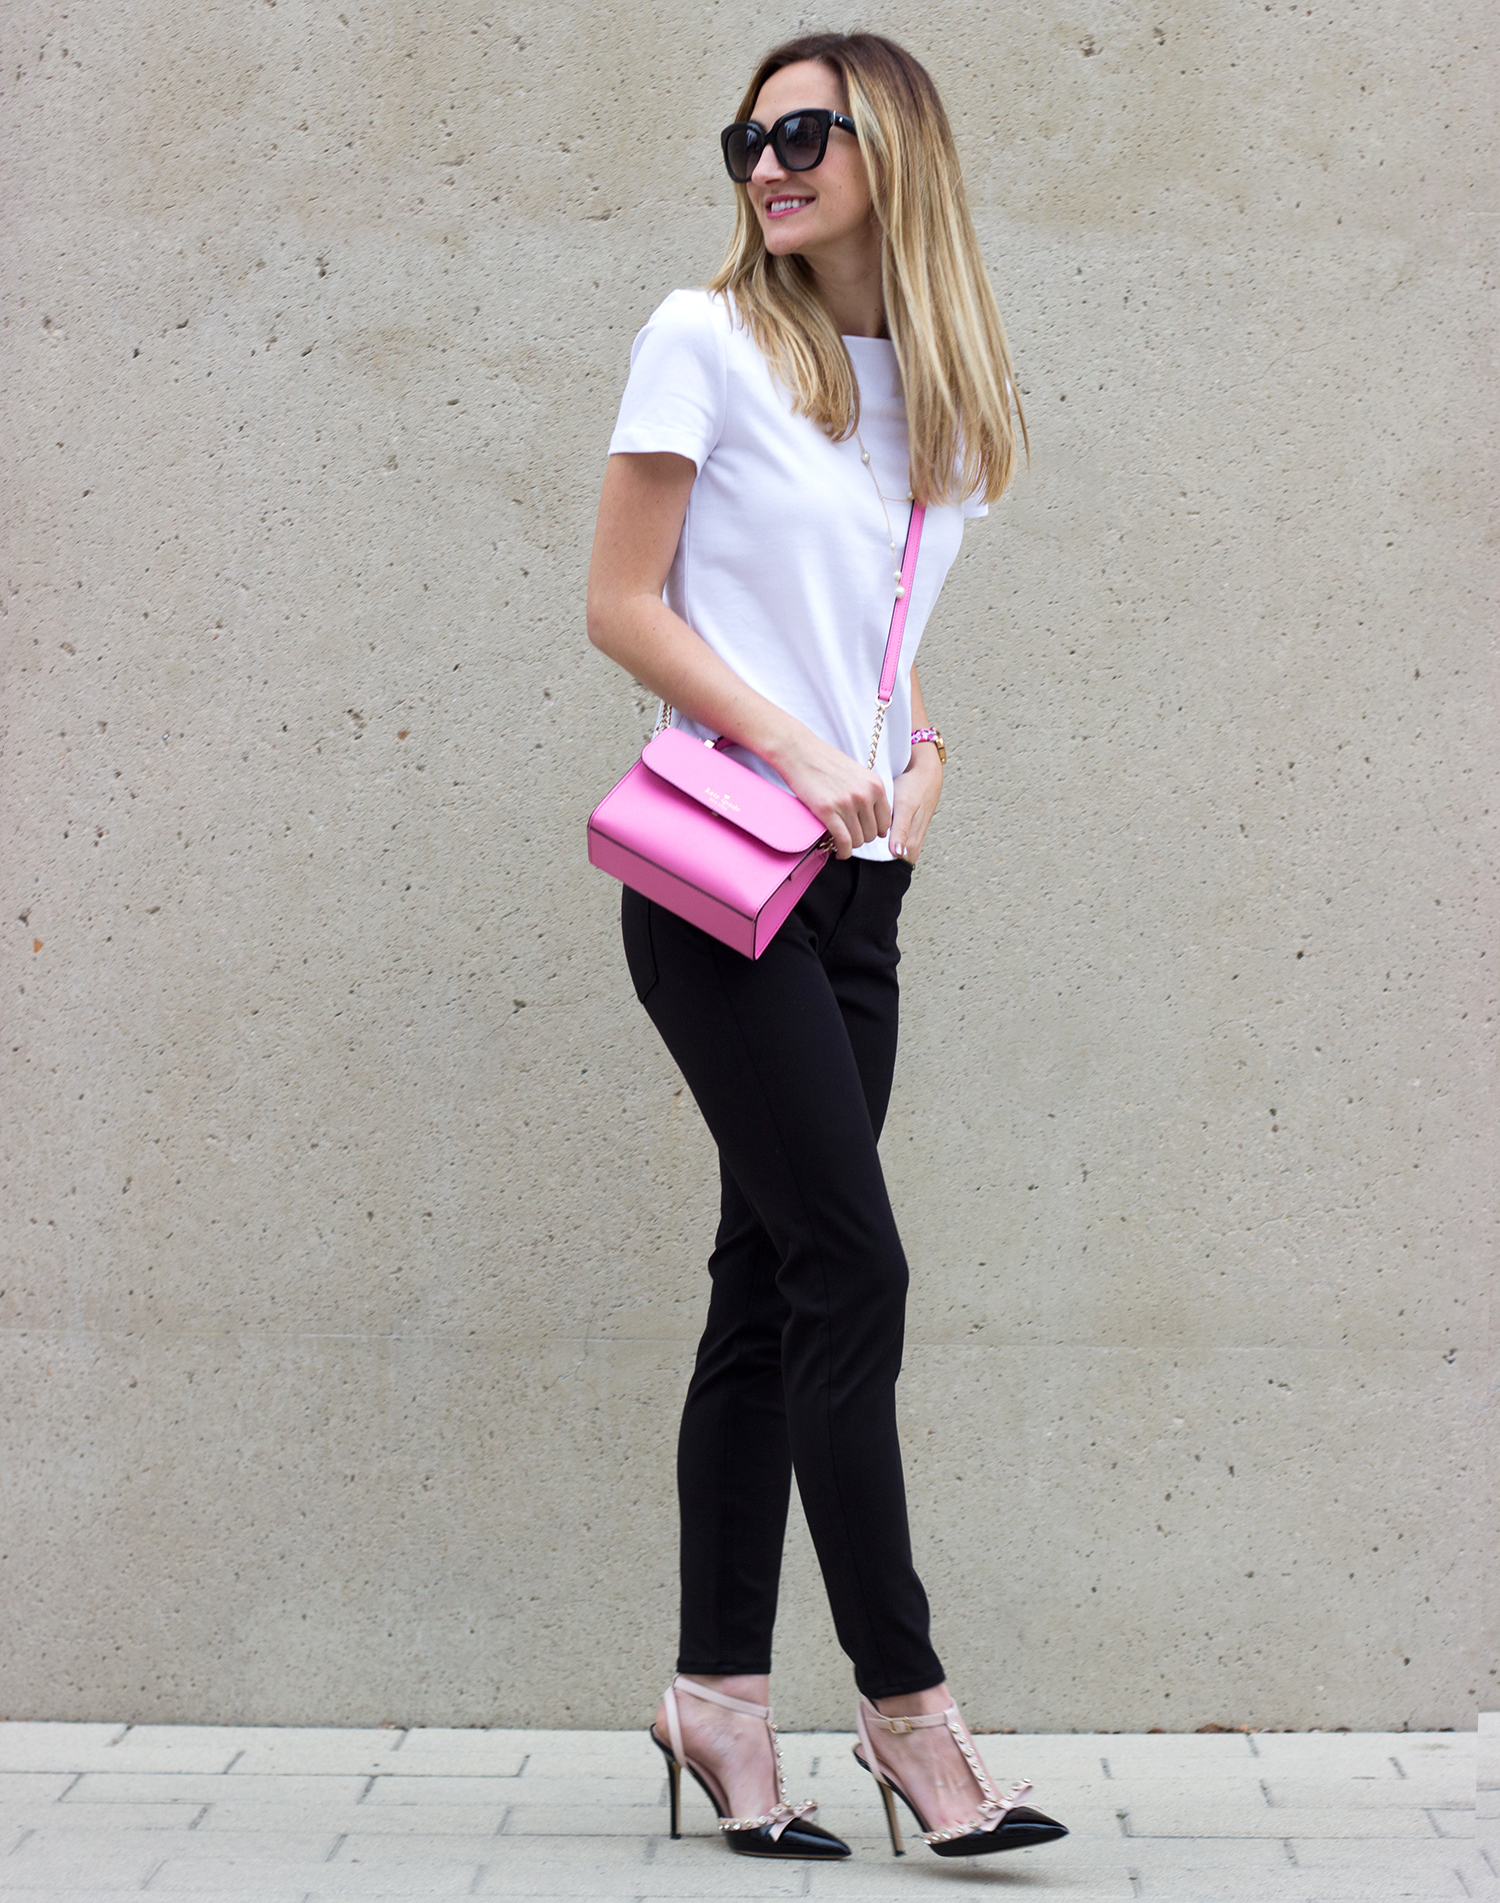 livvland-blog-austin-texas-fashion-blogger-kate-spade-black-cigarette-pants-pink-rouge-mini-handbag-white-everyday-tee-broome-street-1